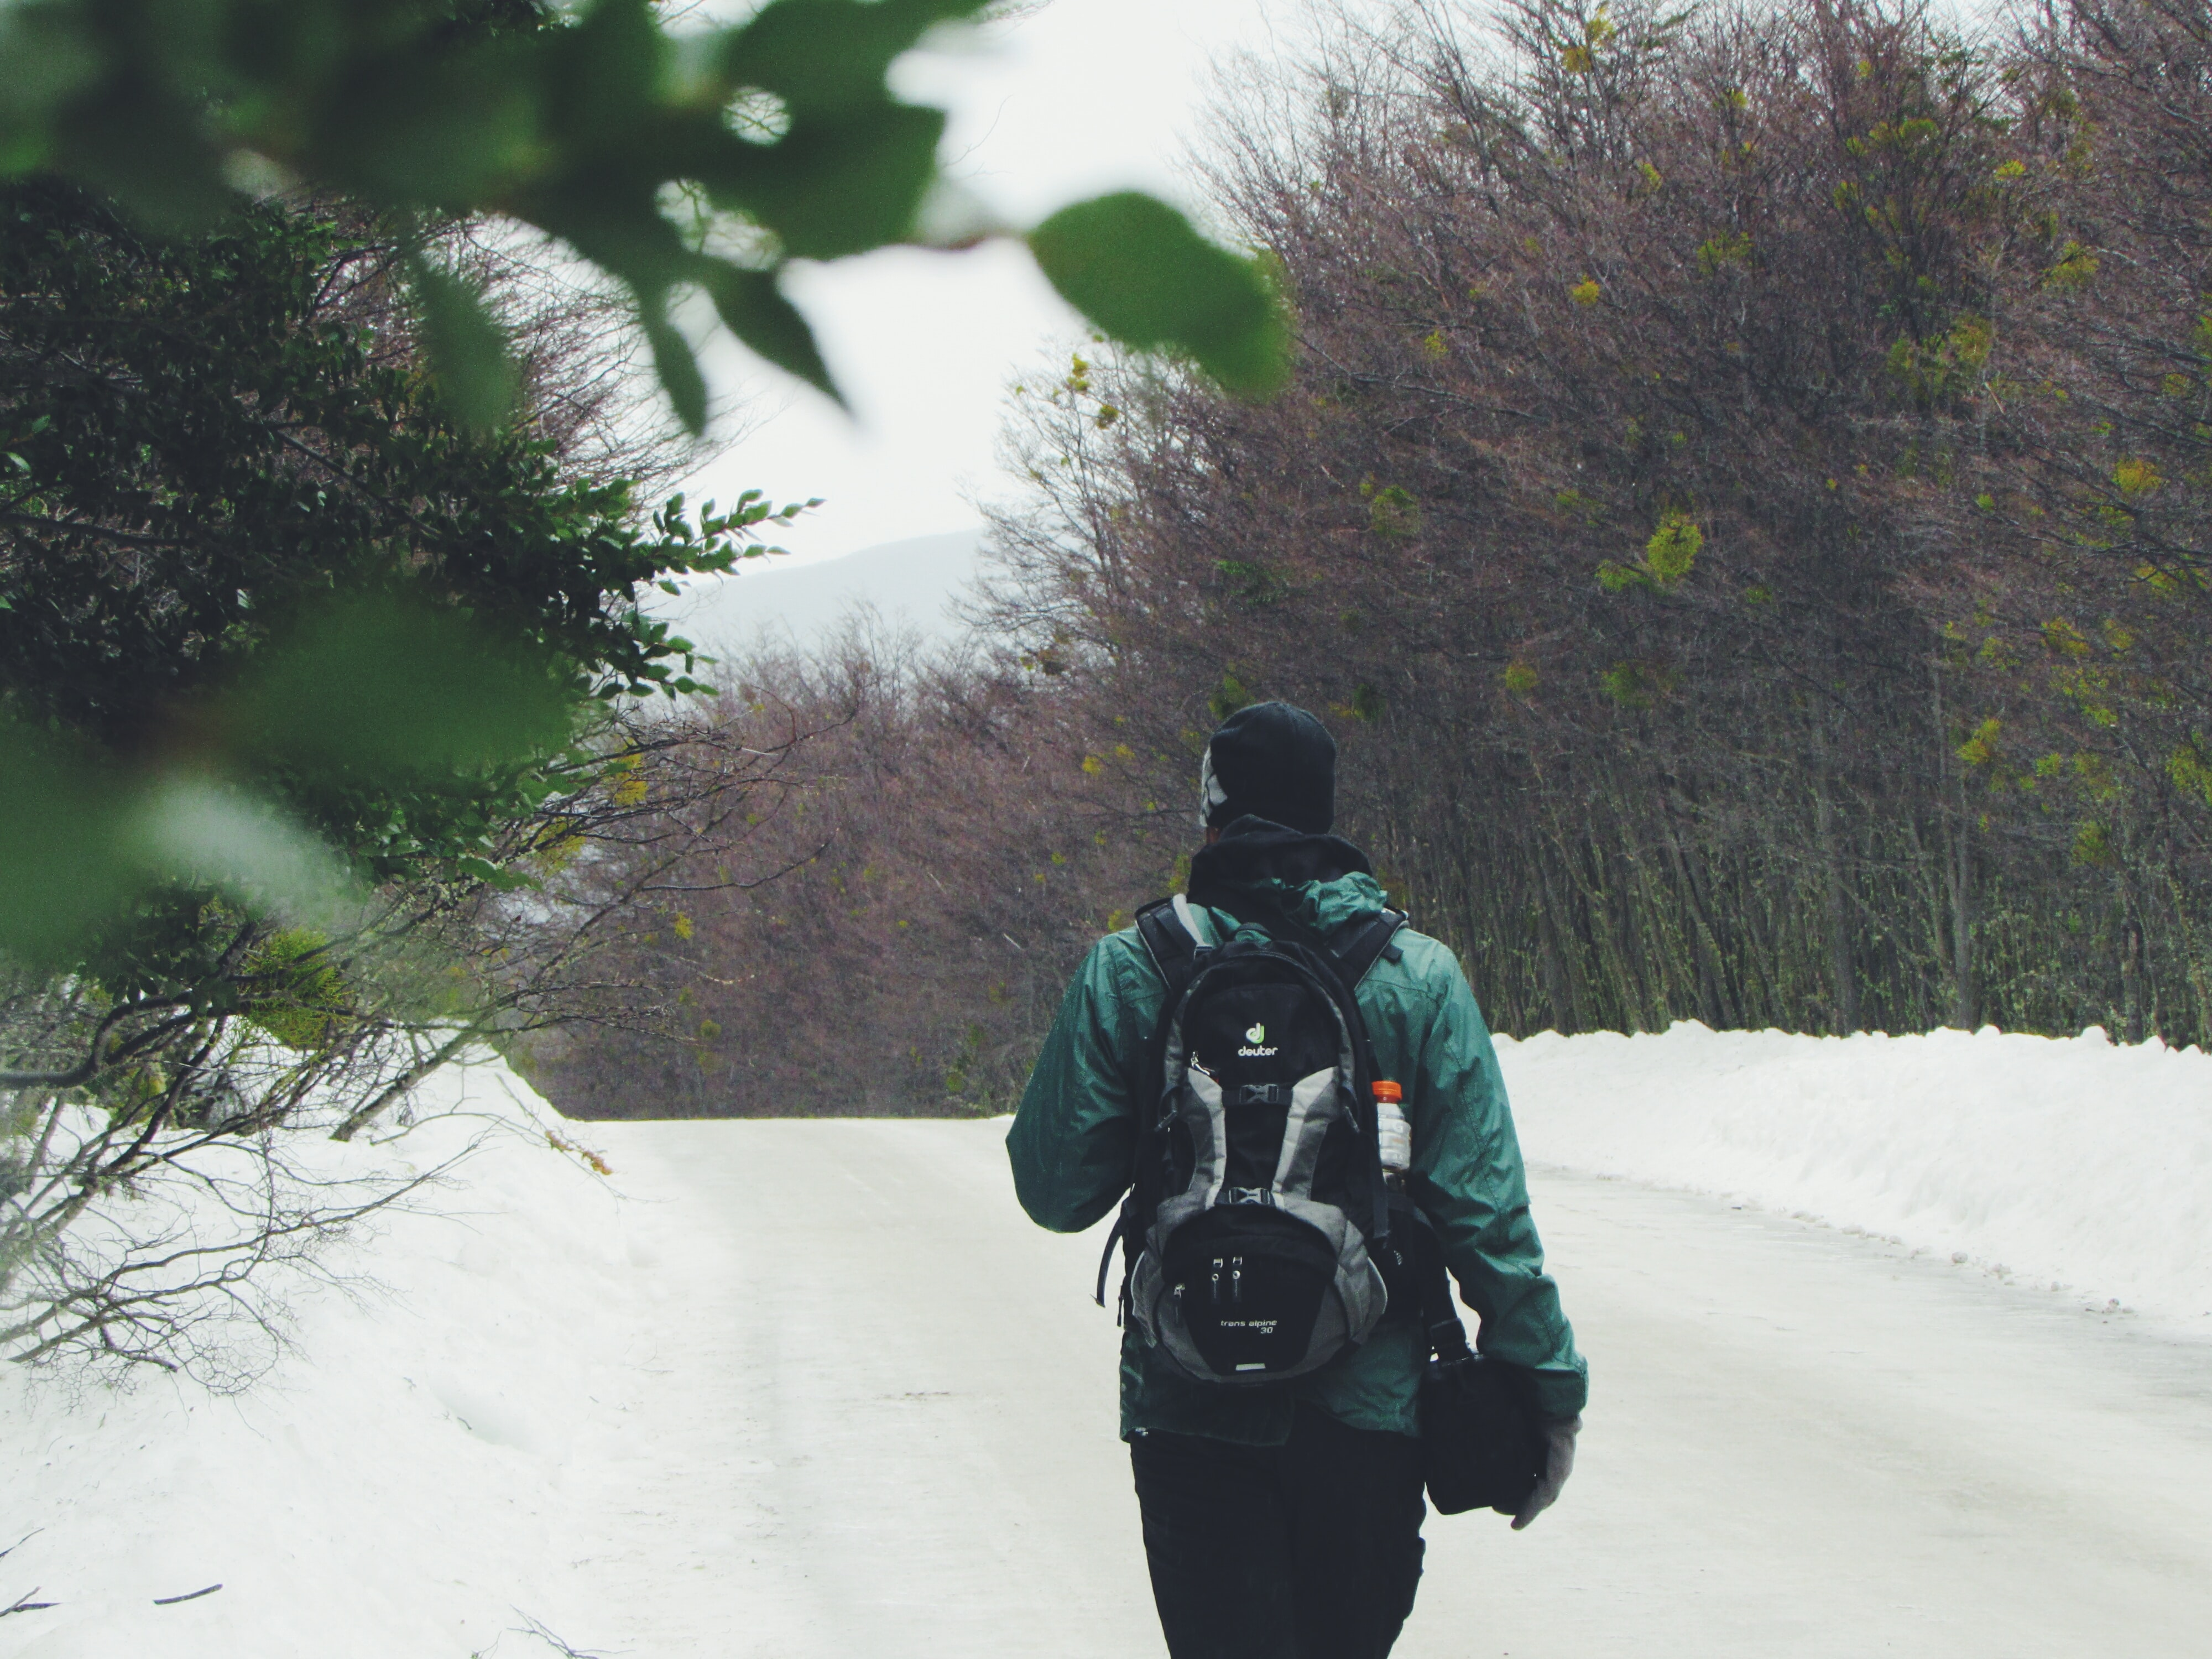 A person in a coat faces away while hiking on a snowy path in Patagonia